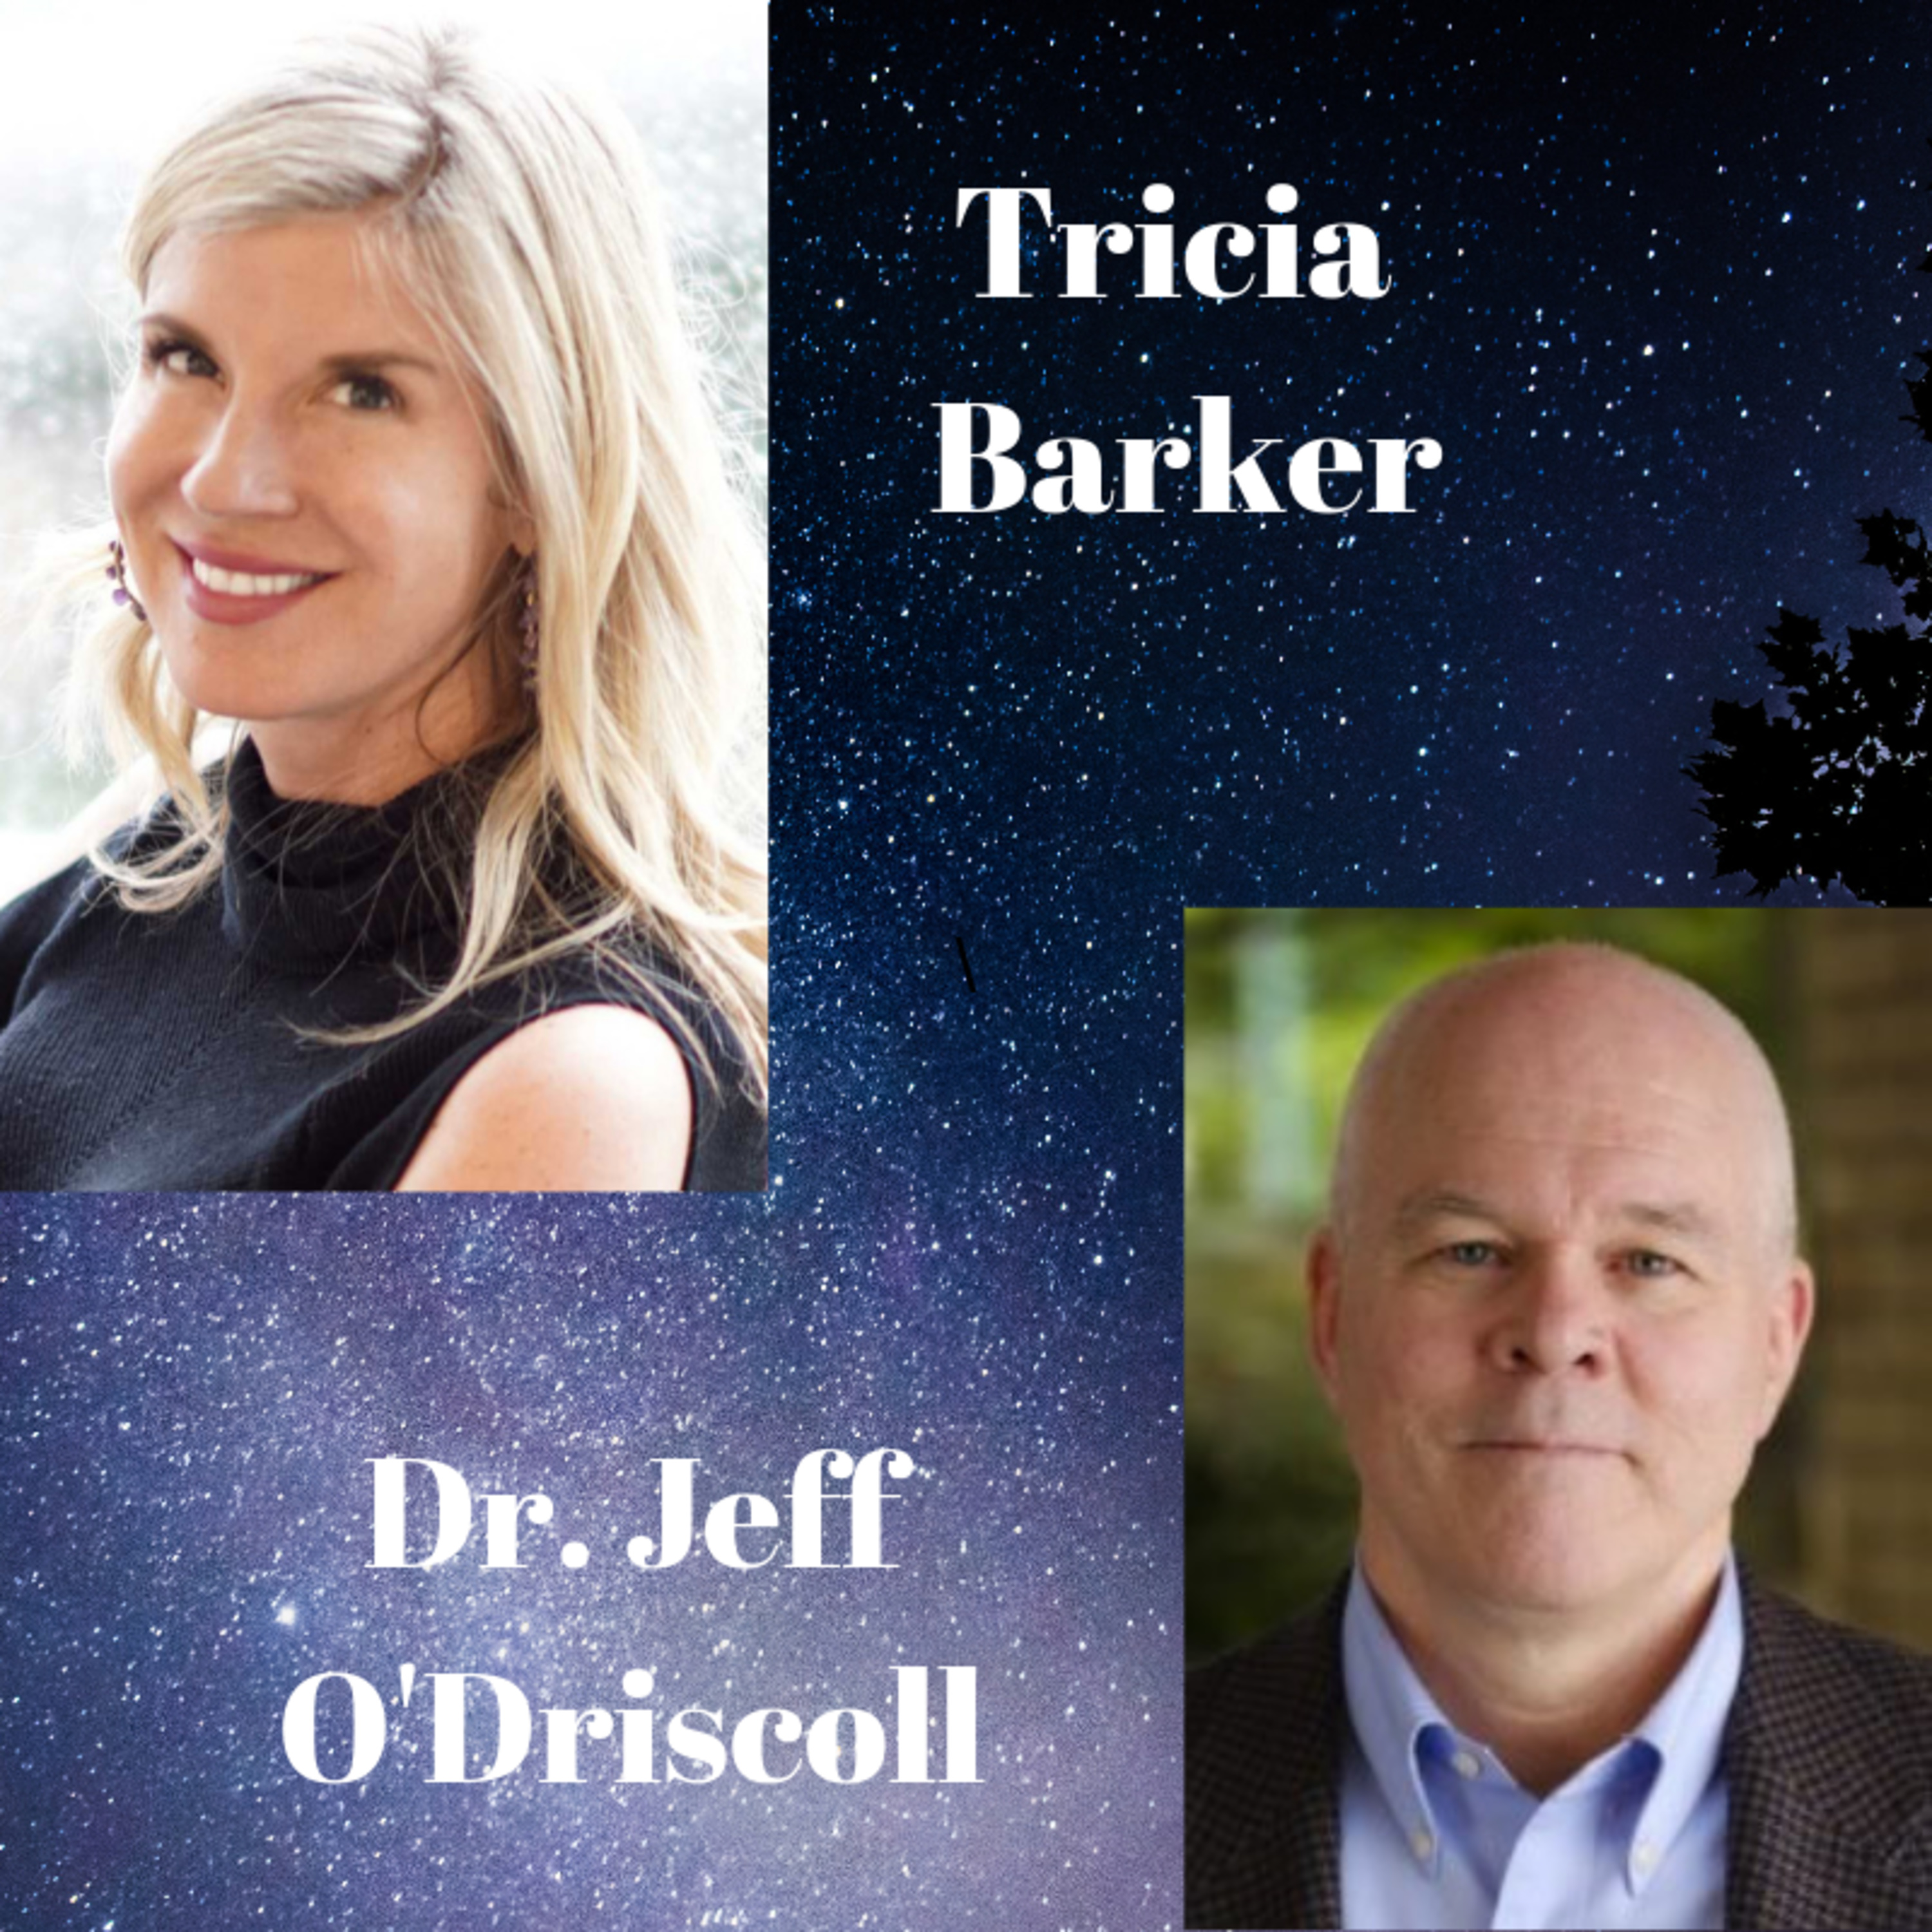 S2 Ep. 6 Dr. Jeff O'Driscoll ---Tricia Barker's Conversations about NDEs and Spirituality